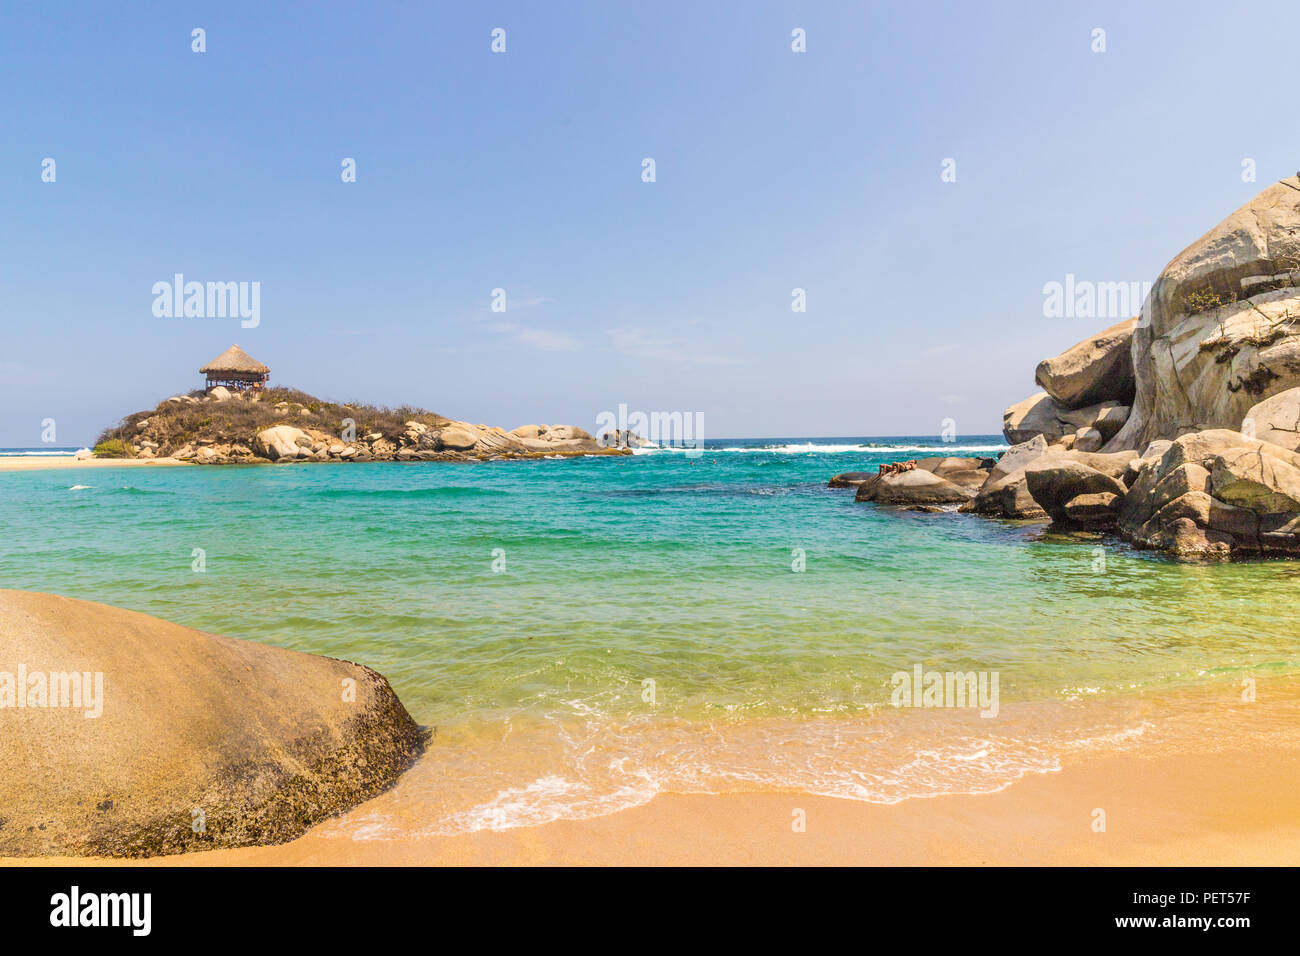 A typical view in Tayrona National Park in Colombia. - Stock Image